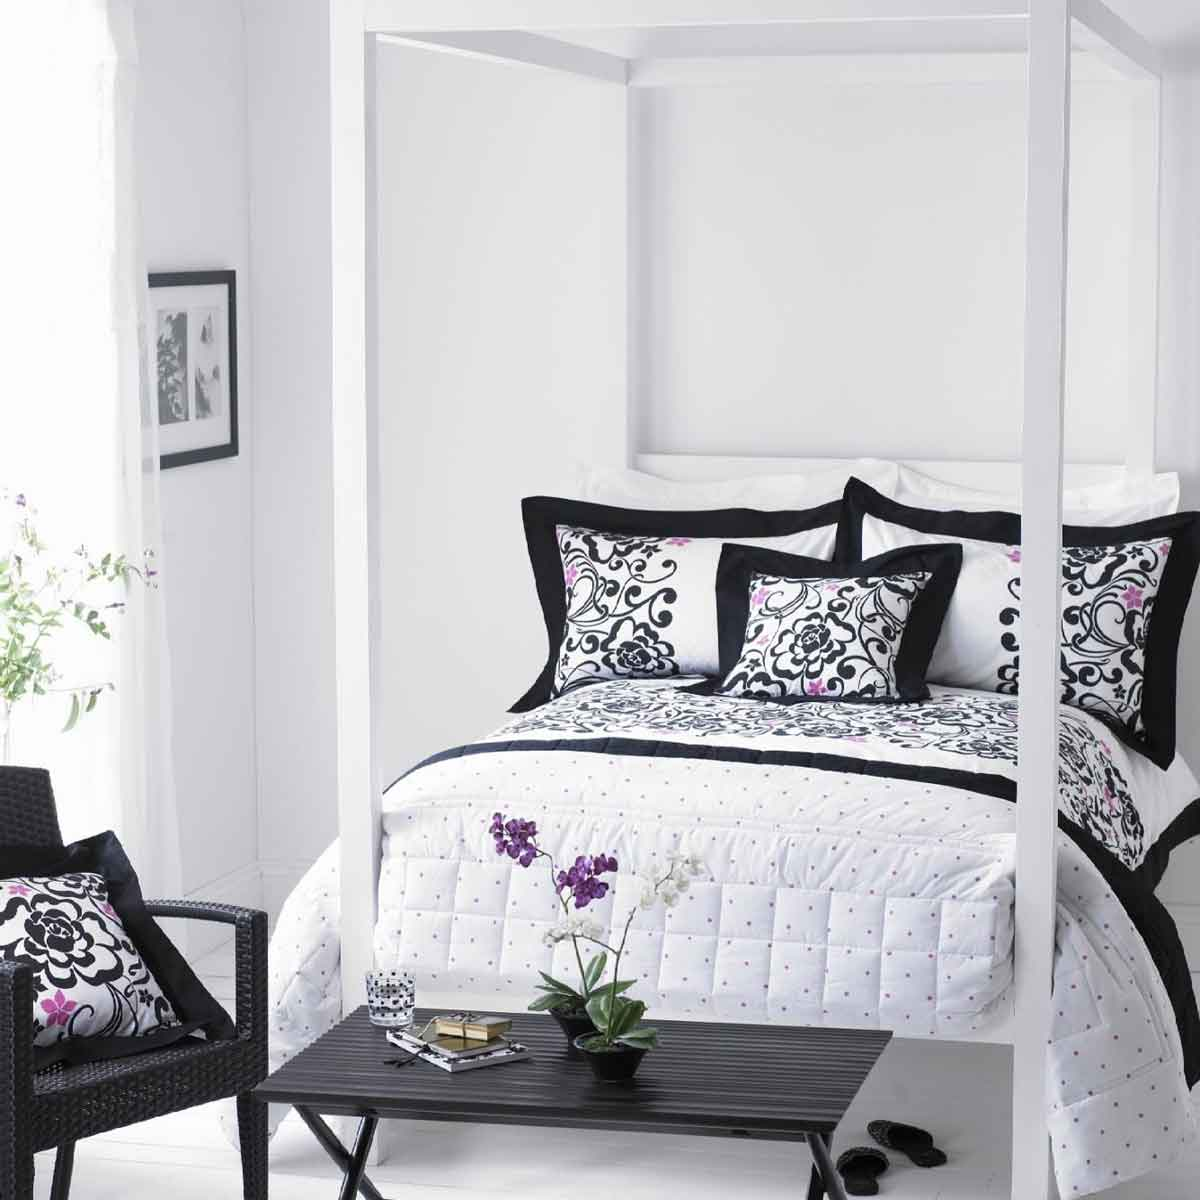 Black white grey bedroom 2017 grasscloth wallpaper for Sophisticated feminine bedroom designs